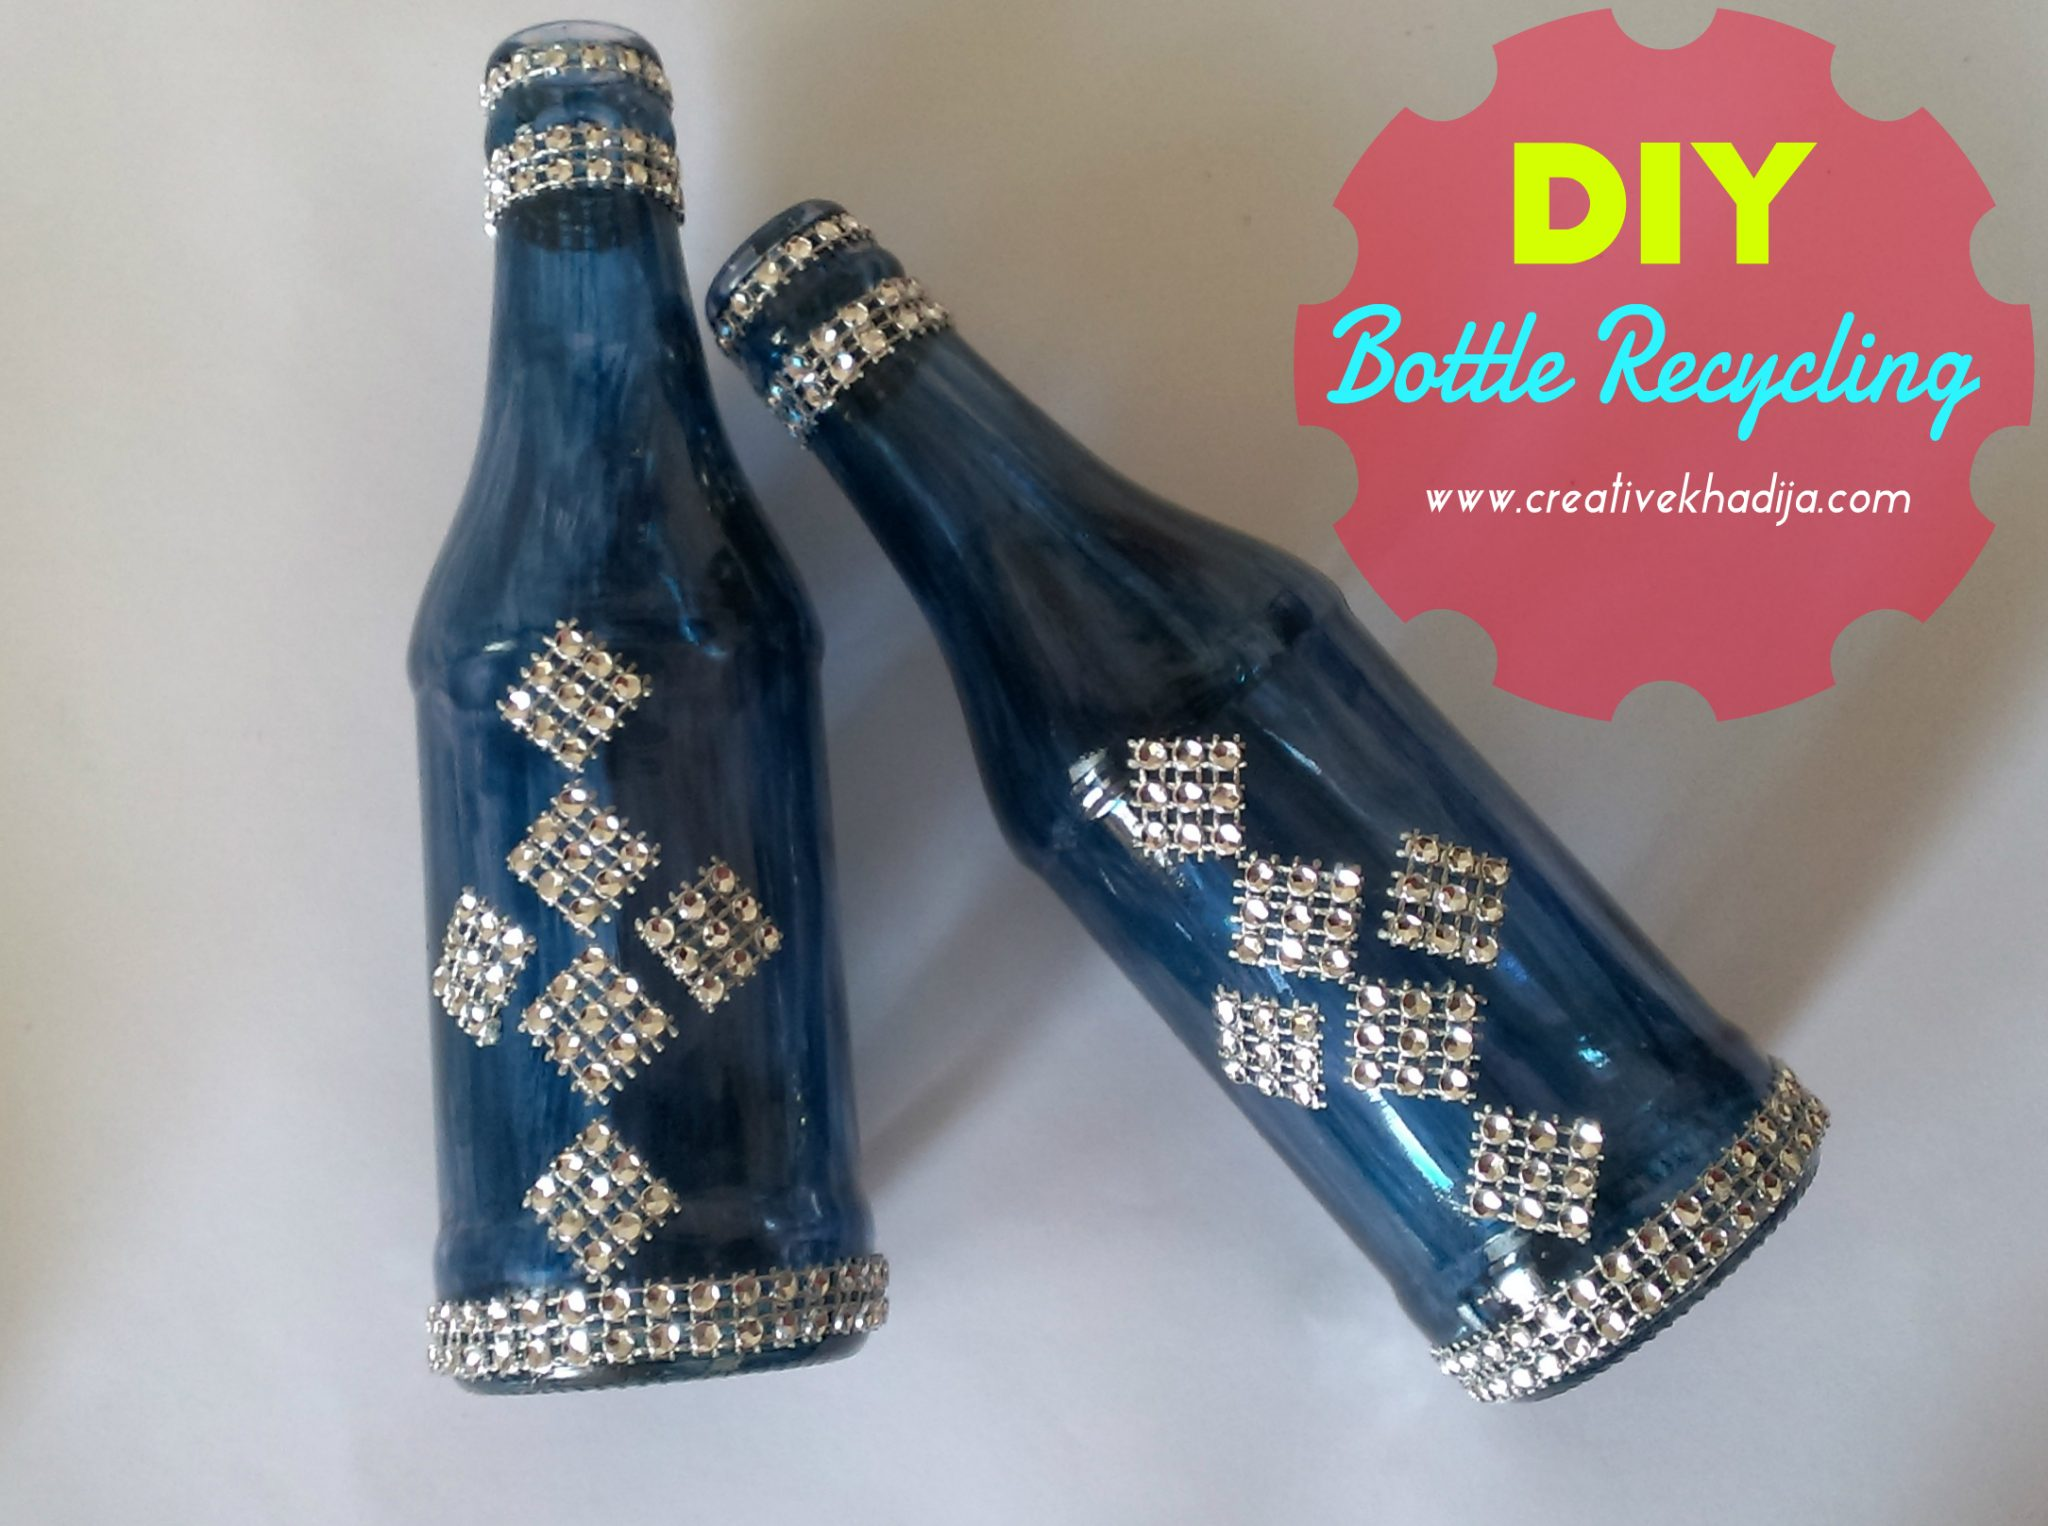 Diy glass painted bottles decoration recycling ideas - How to decorate glass bottles ...